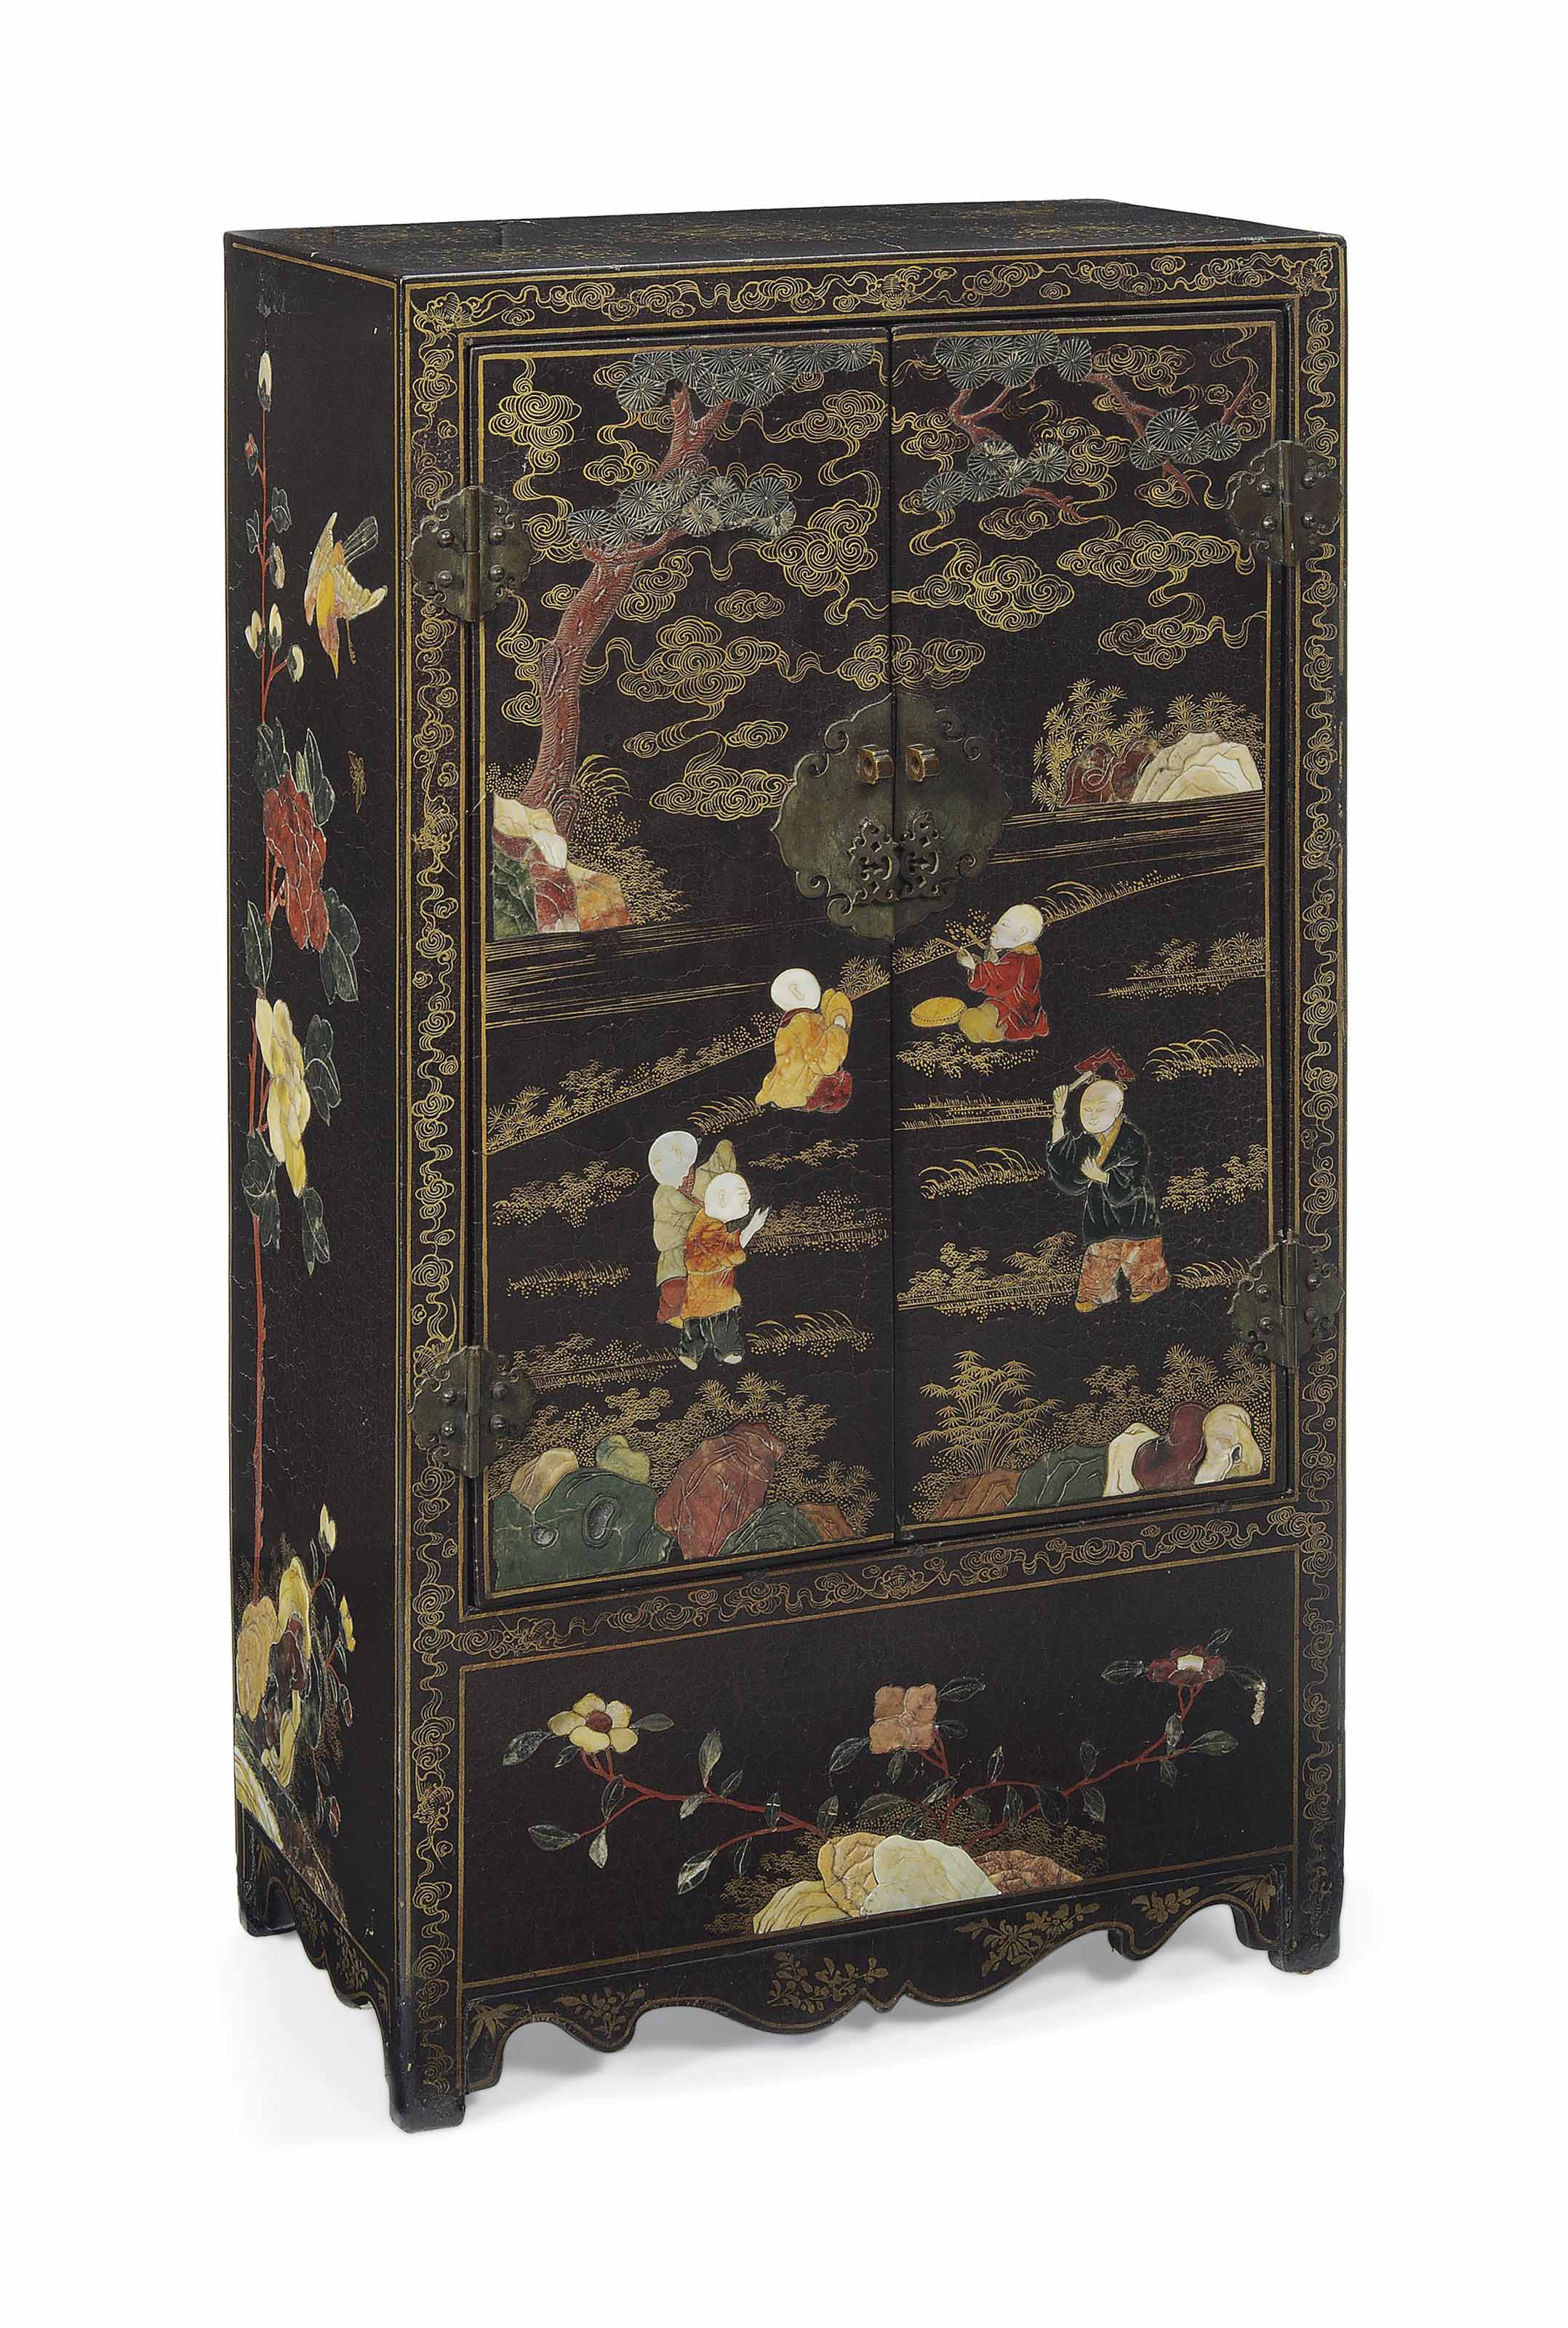 A MOTHER-OF-PEARL INLAID AND H